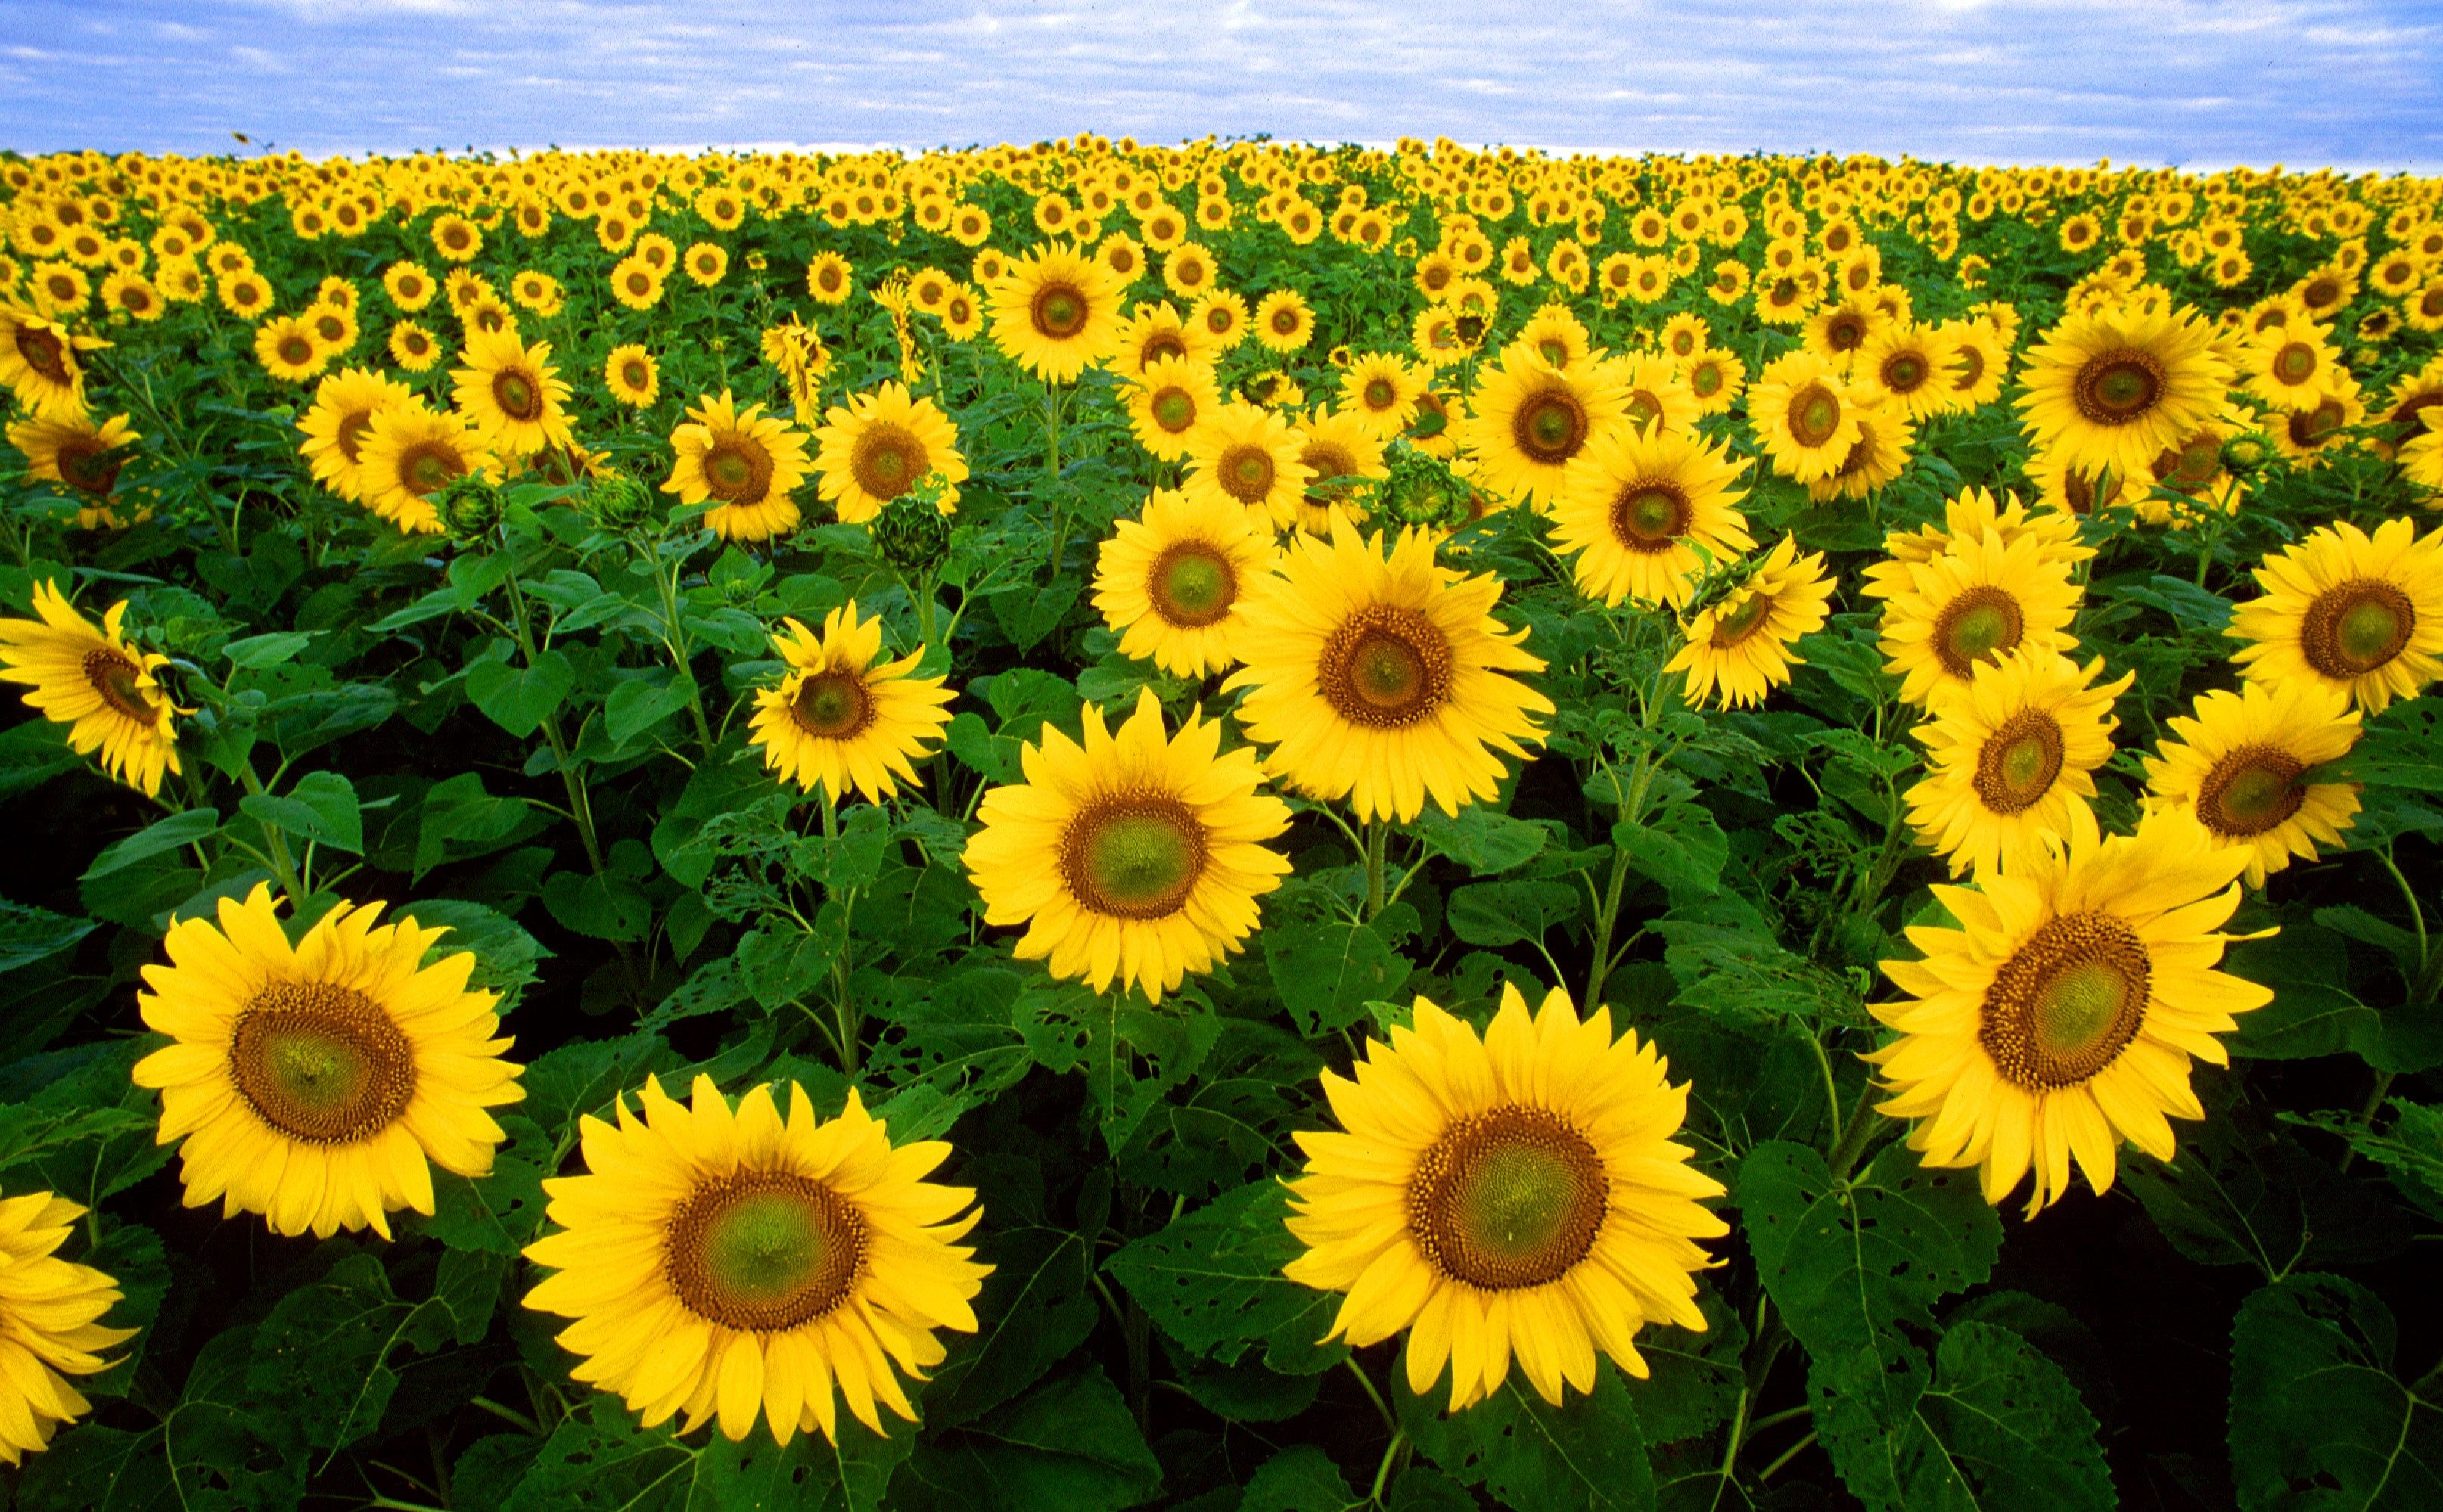 Awesome Pictures For Wallpaper Screen Download Sunflower Fields Sunflower Plants